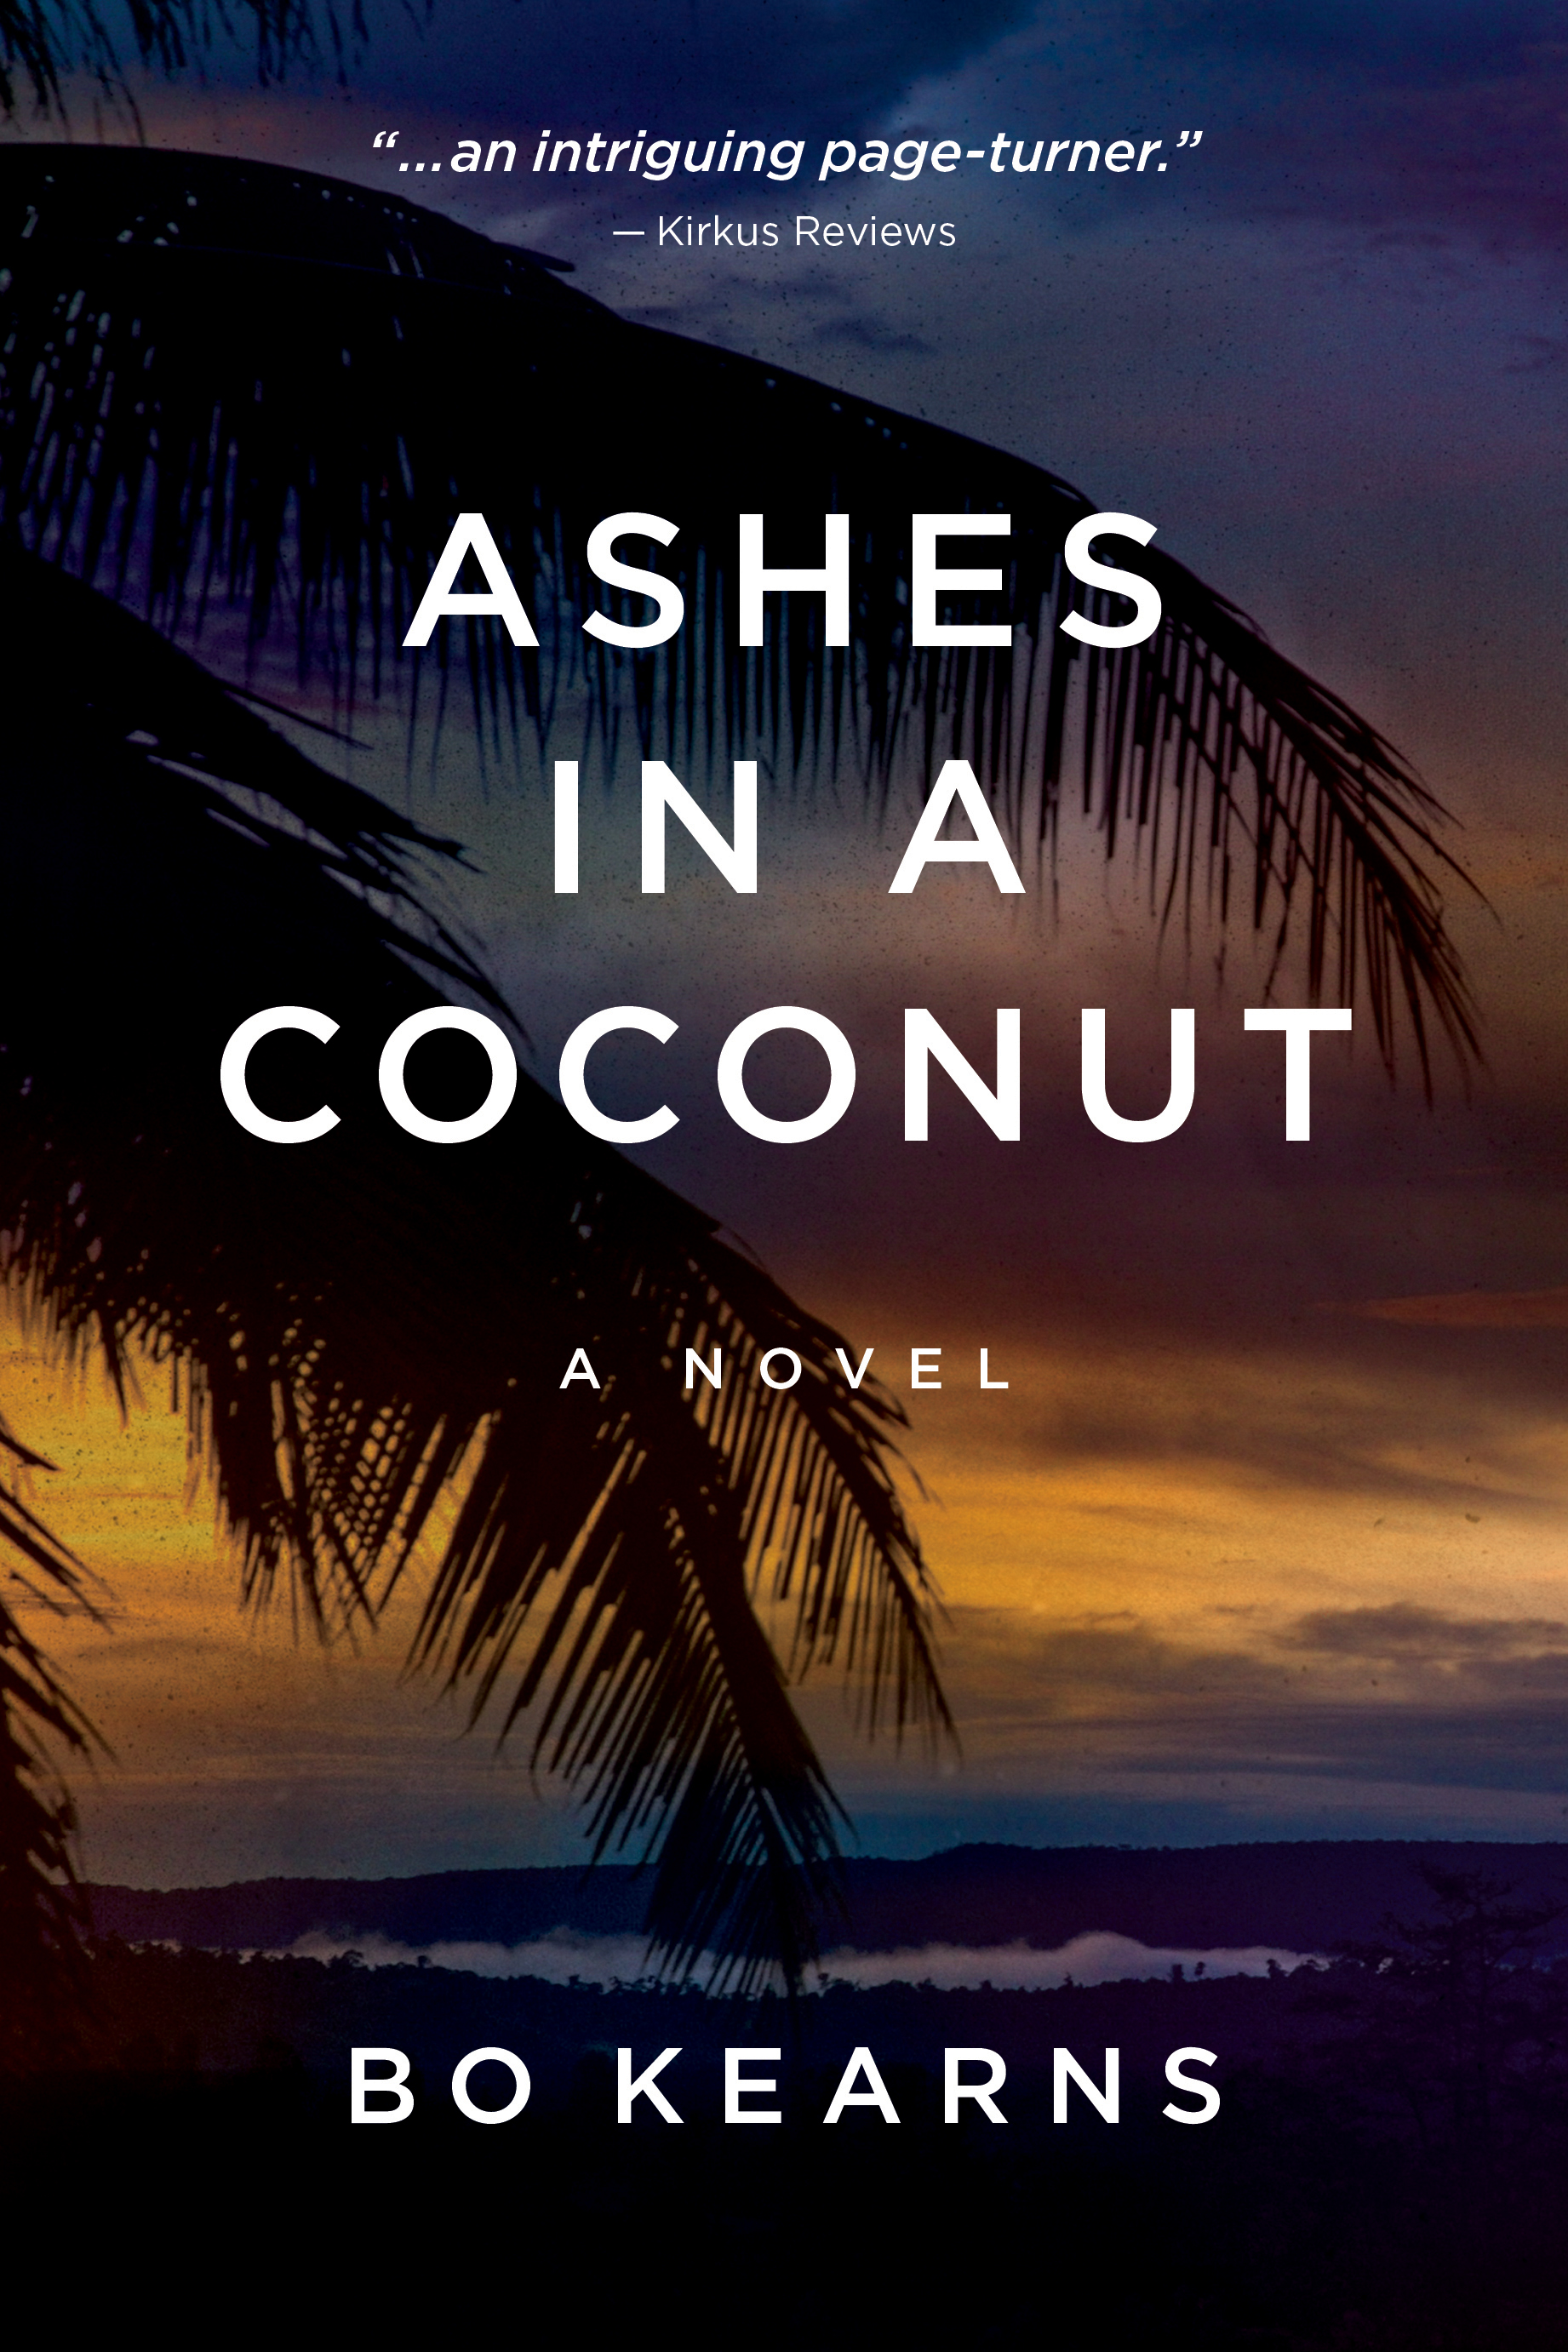 Ashes Coconut_Cover_Apr 2019 300dpi.jpg